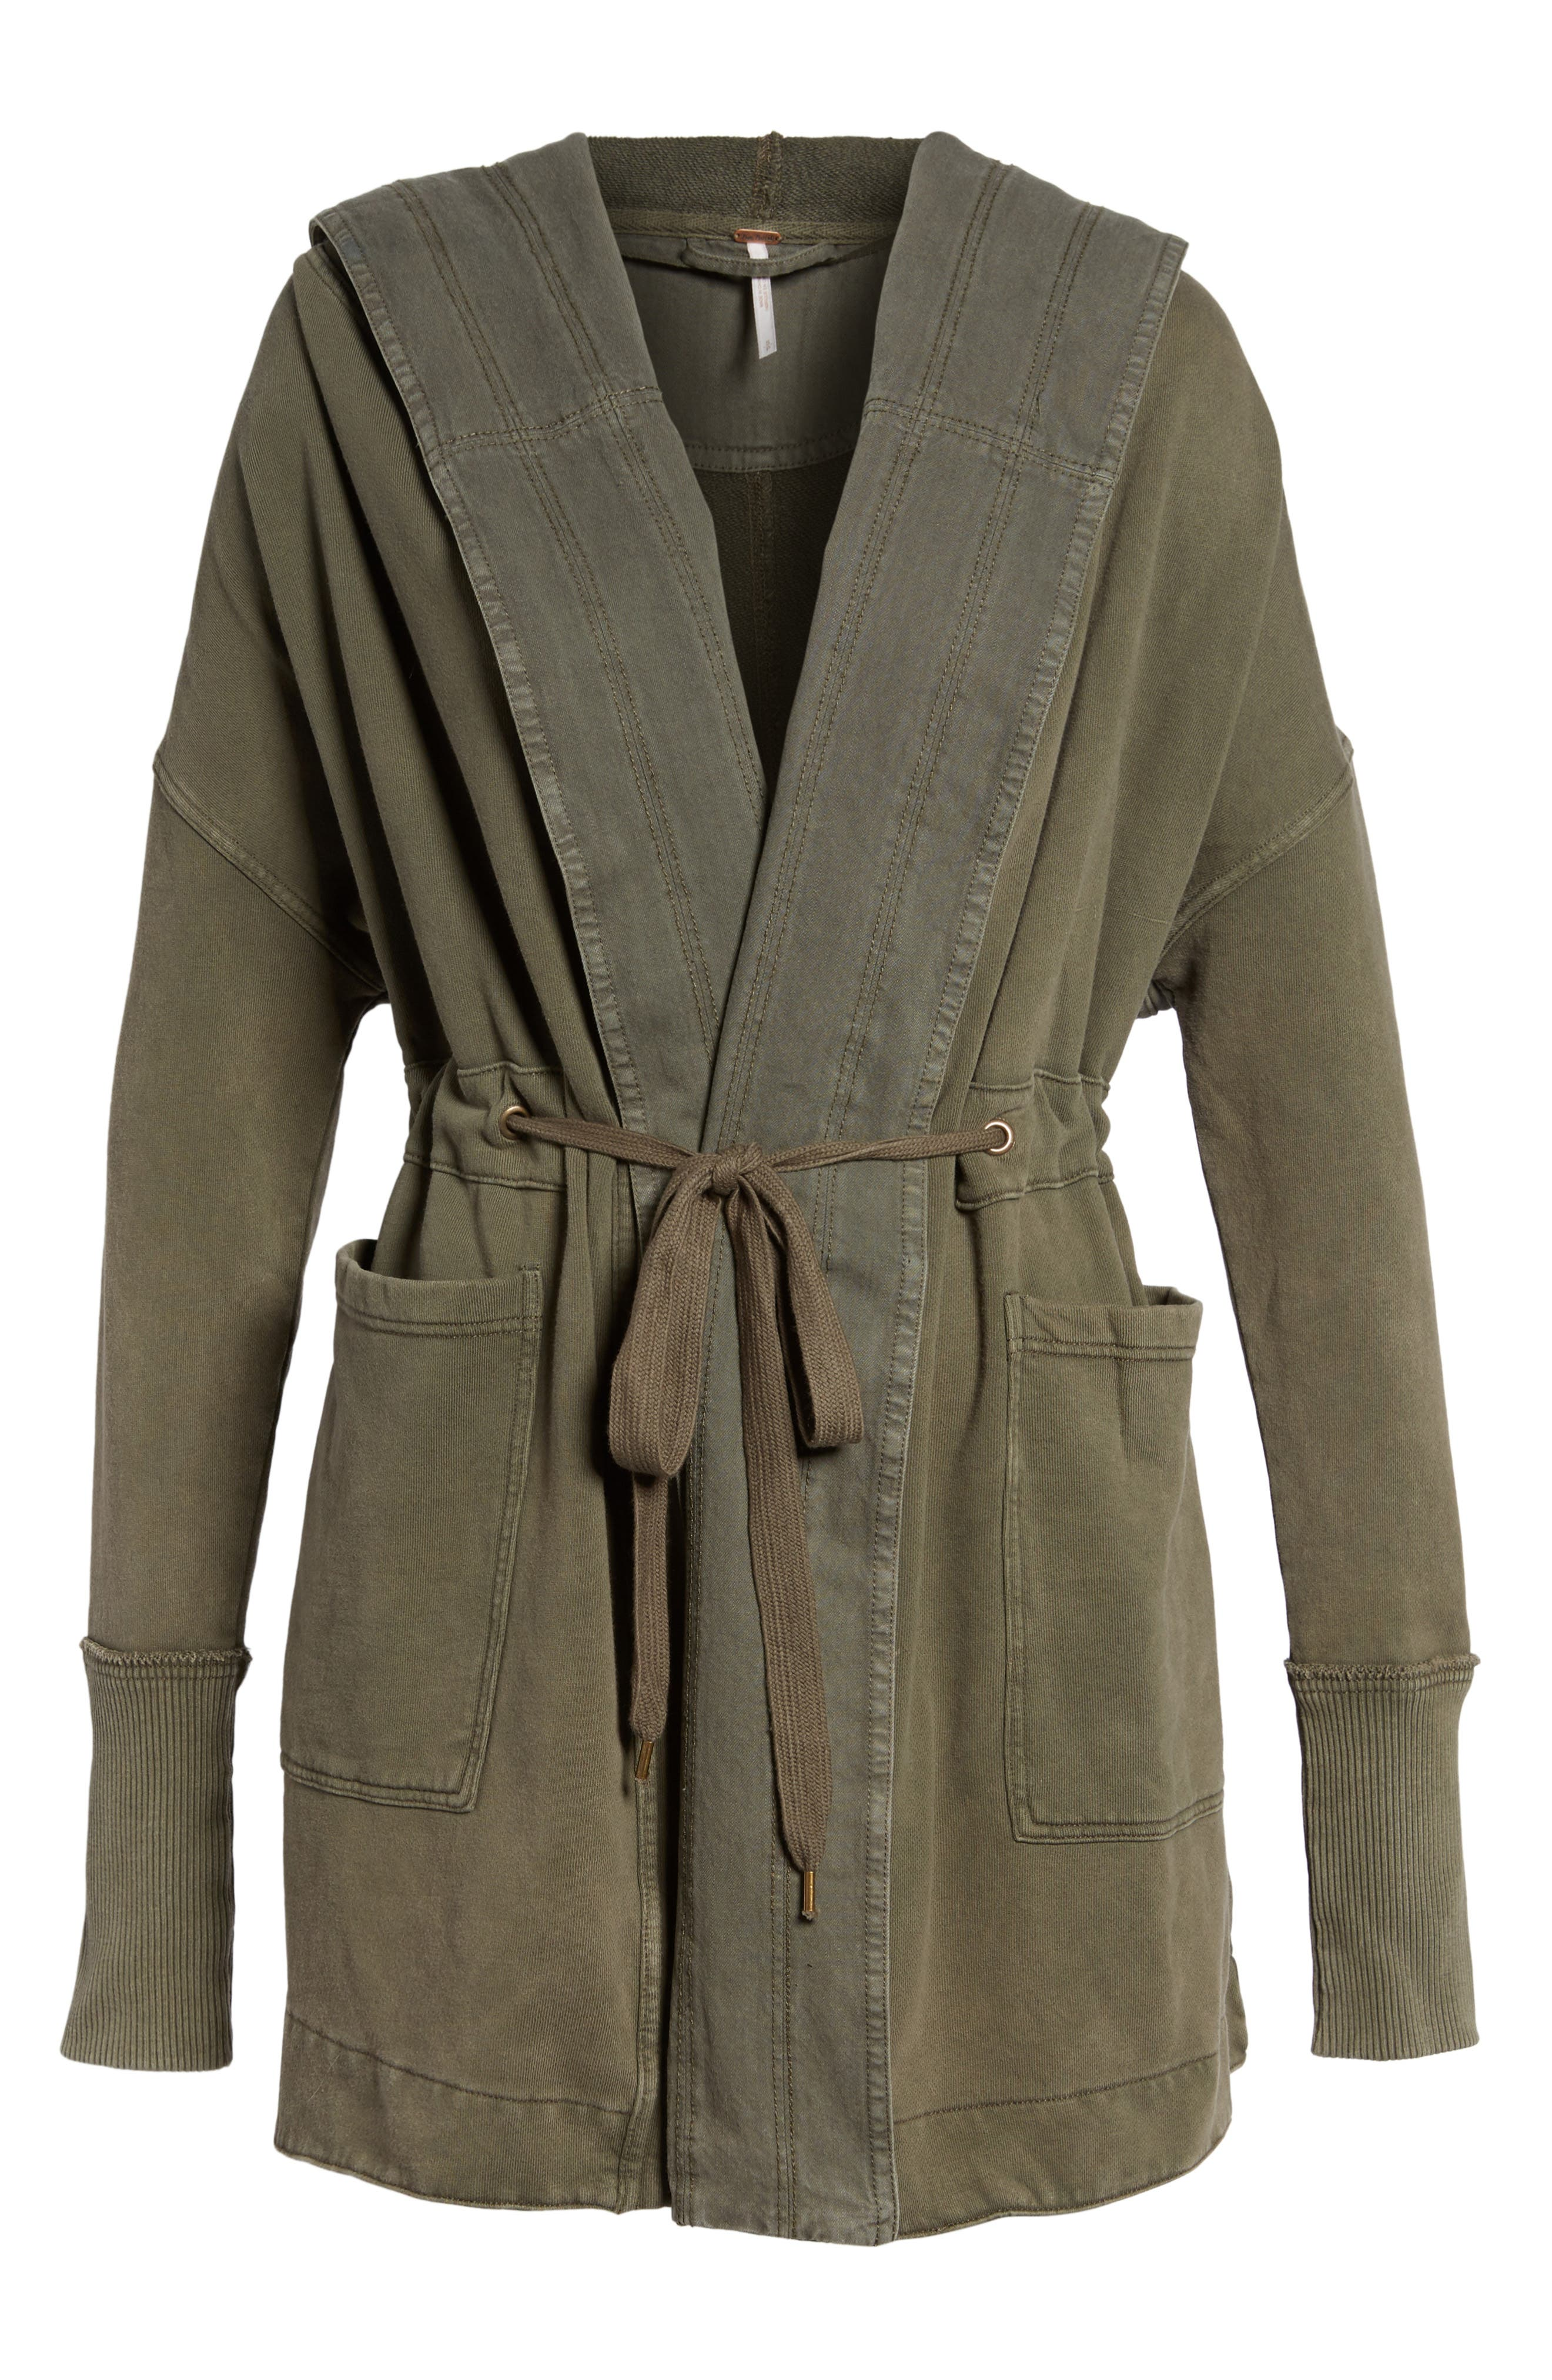 FREE PEOPLE, Brentwood Cotton Cardigan, Alternate thumbnail 2, color, 350